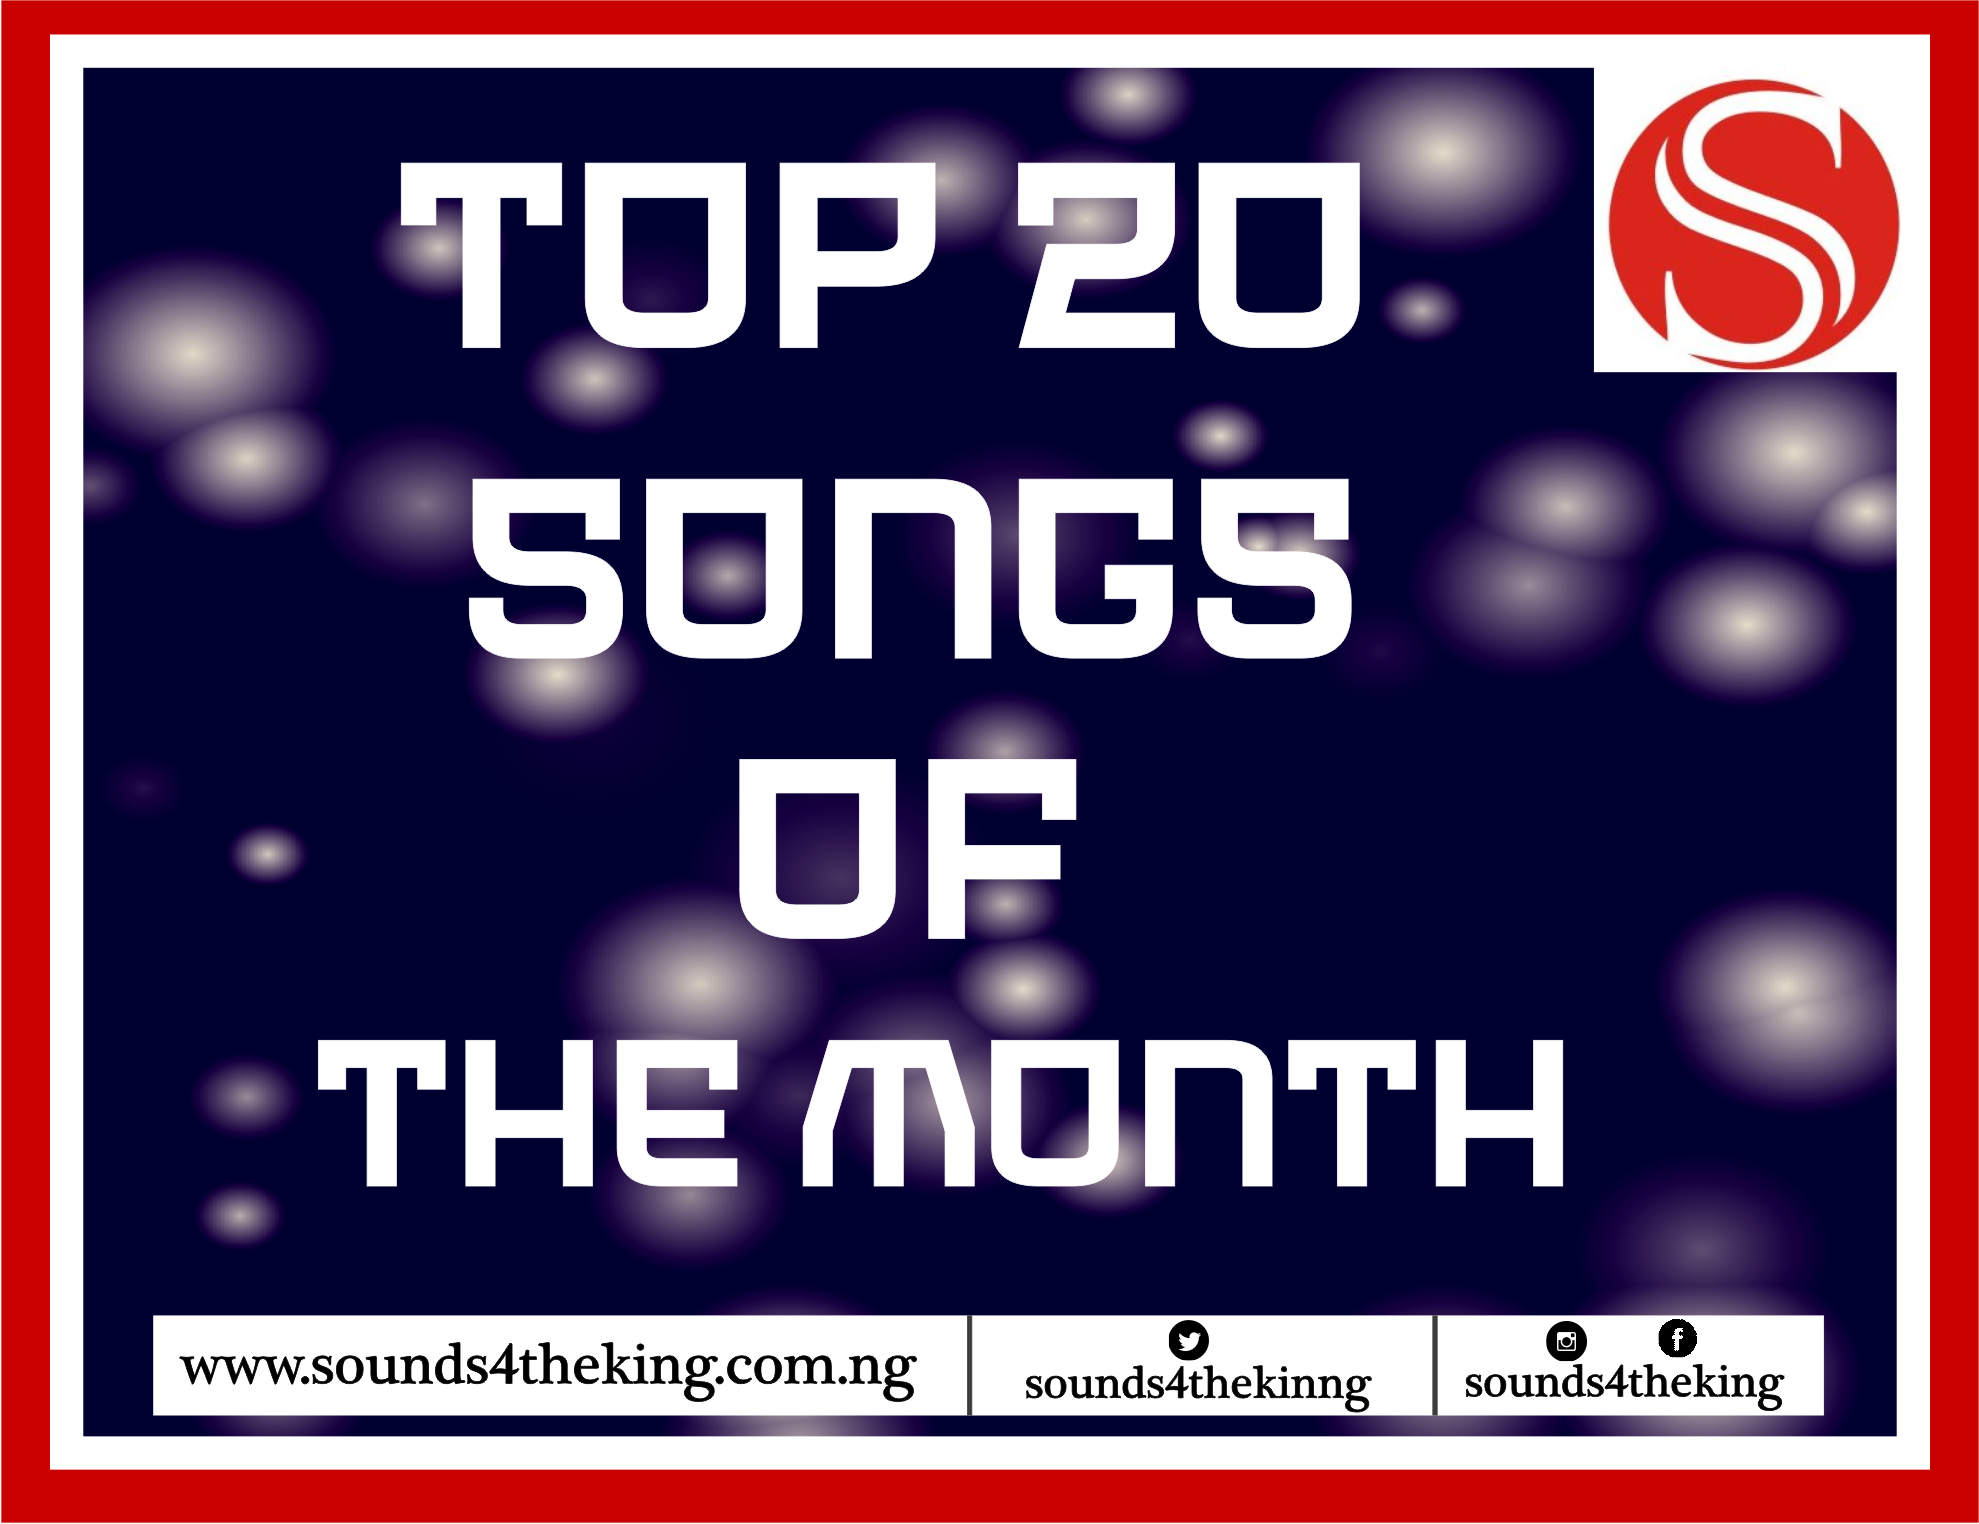 Top 20 songs of the month